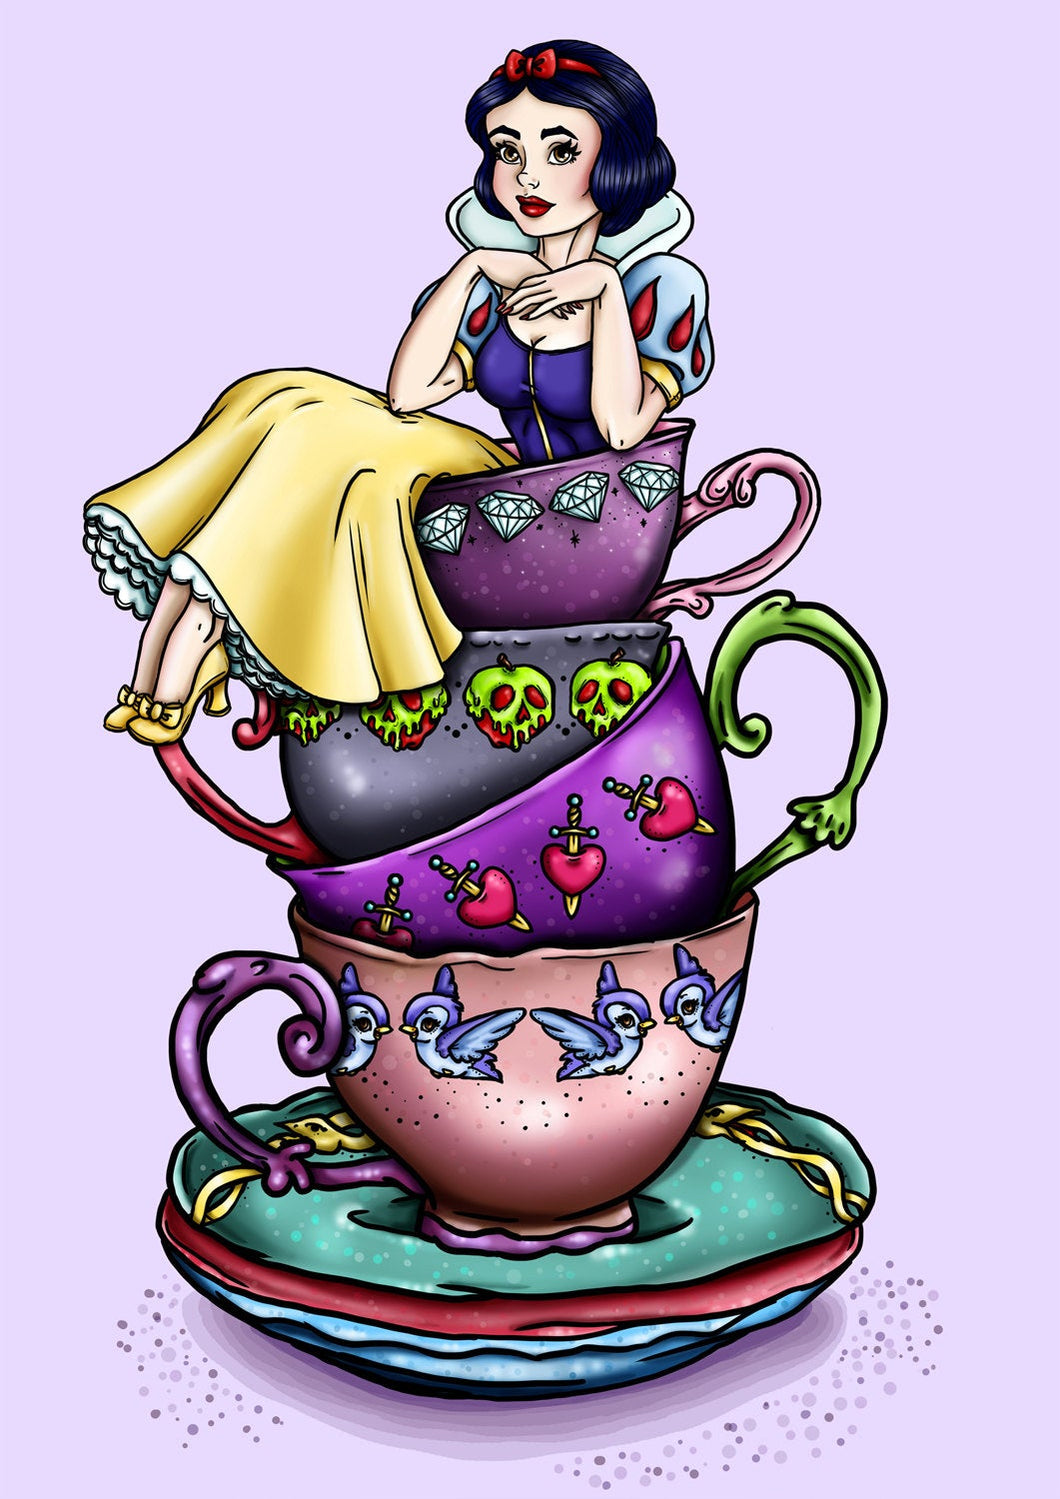 Teacup Snow White - A4 Art Print by Hungry Designs